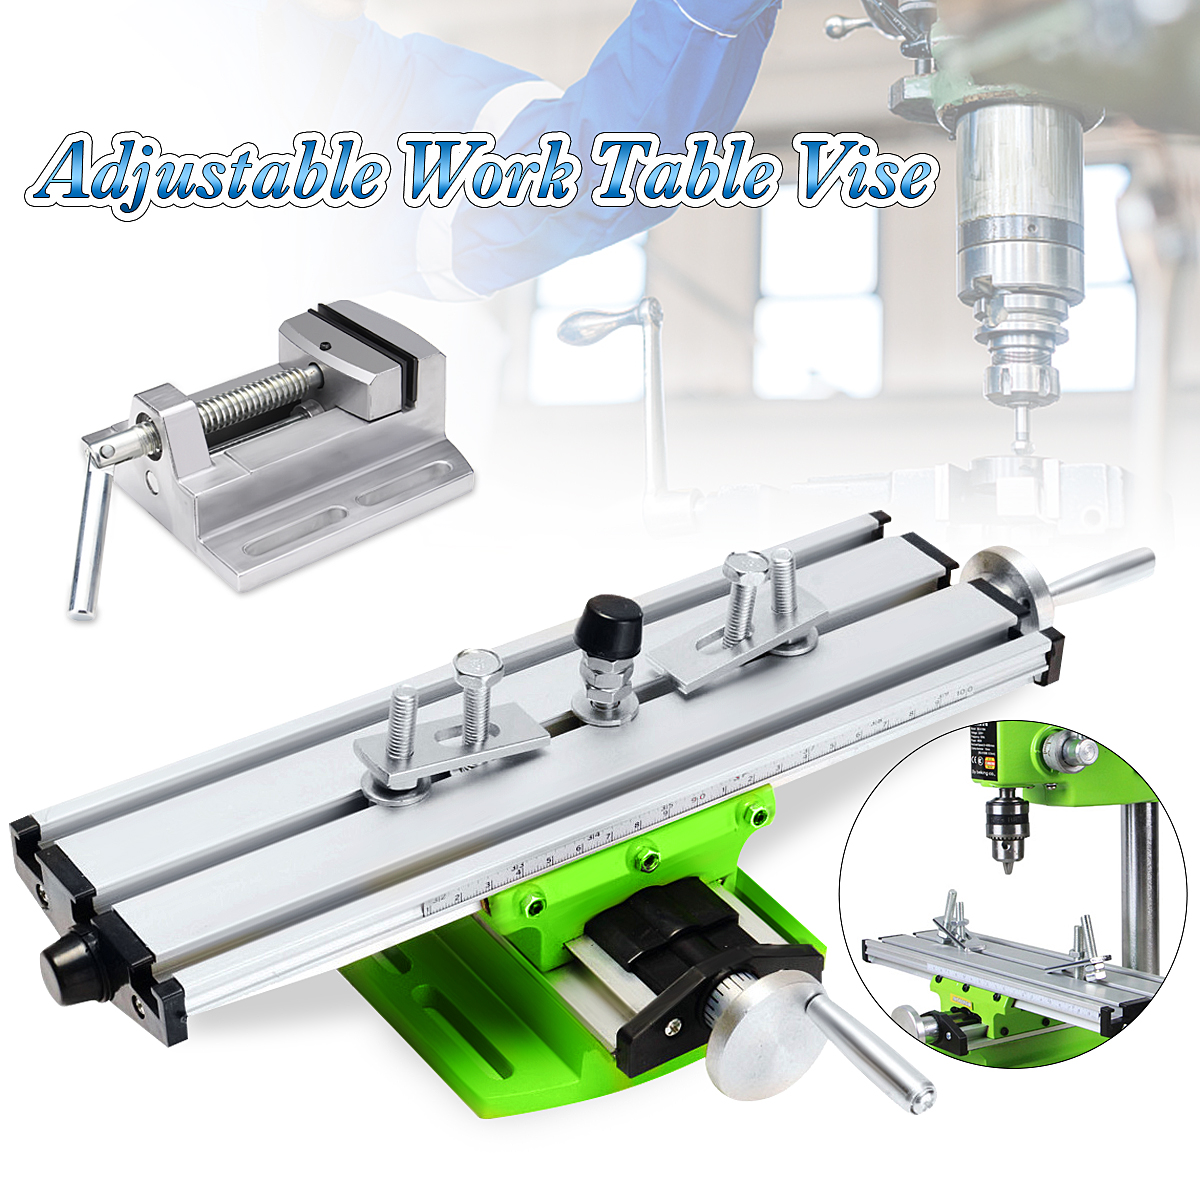 Cross Slide Compound Working Table Bench Drill Milling Work Table Vise